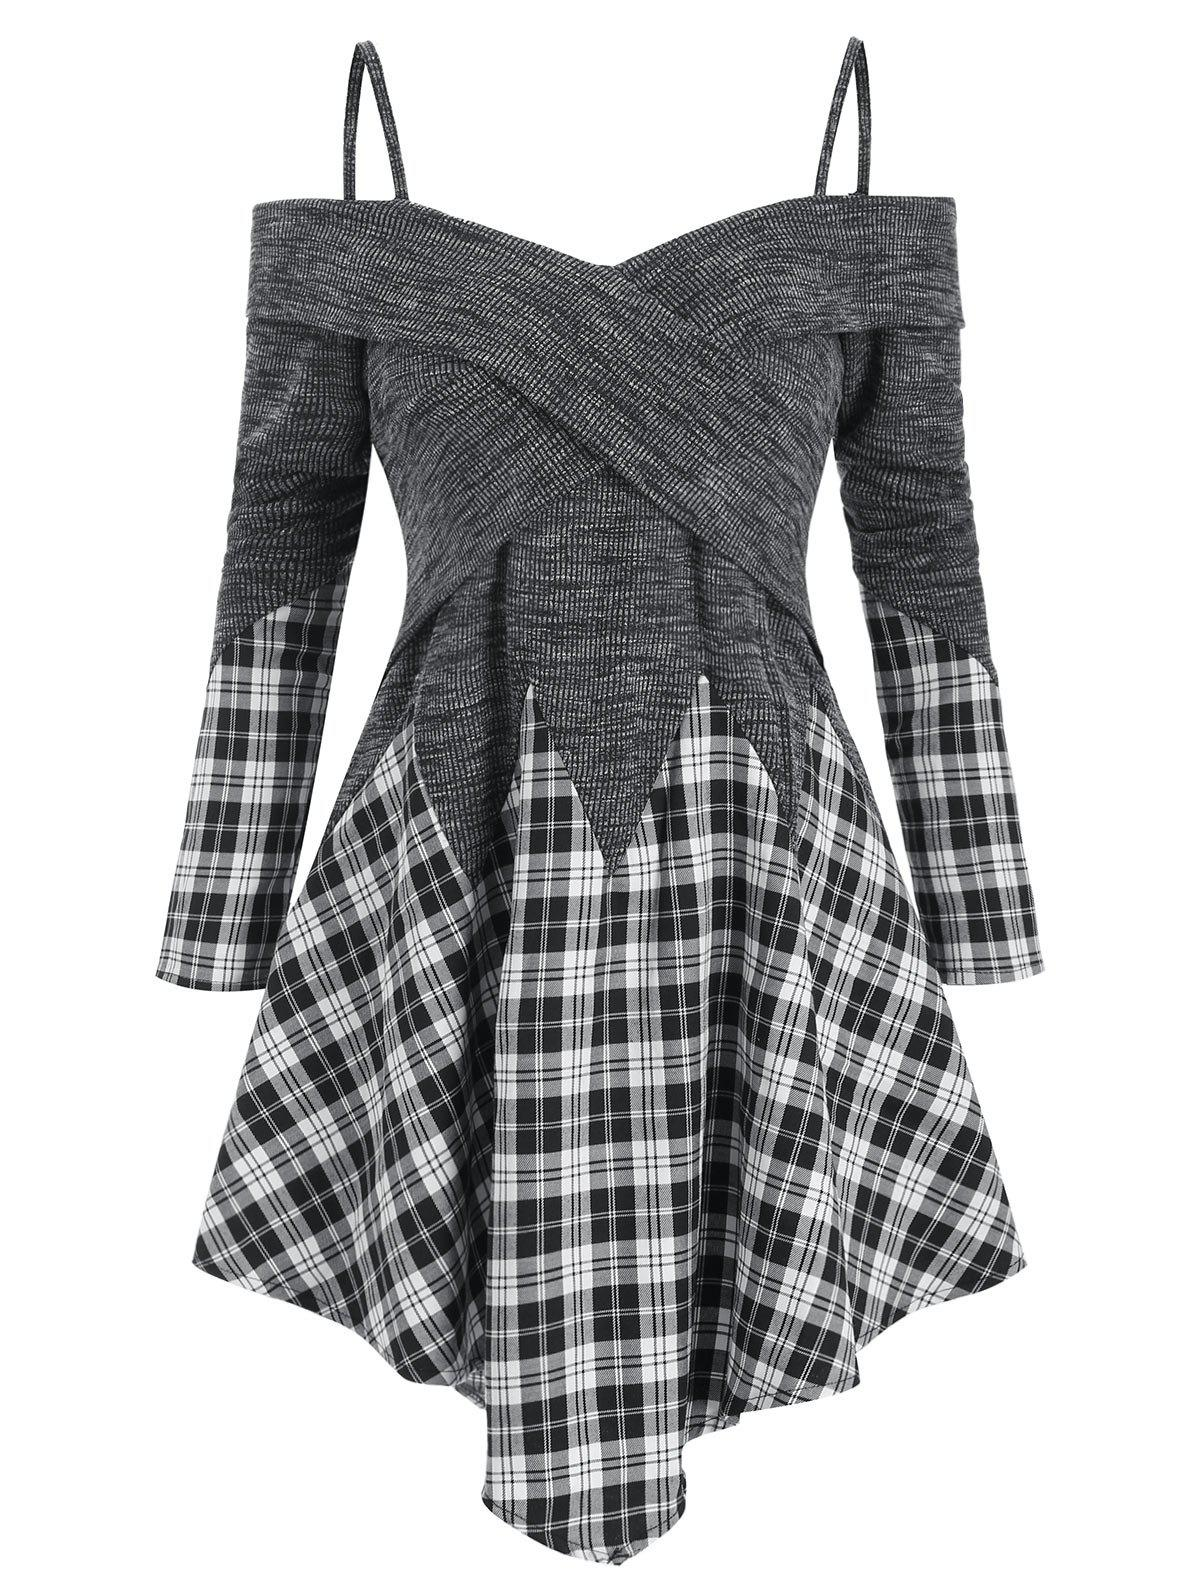 New Plaid Panel Cold Shoulder Asymmetric Cami Top